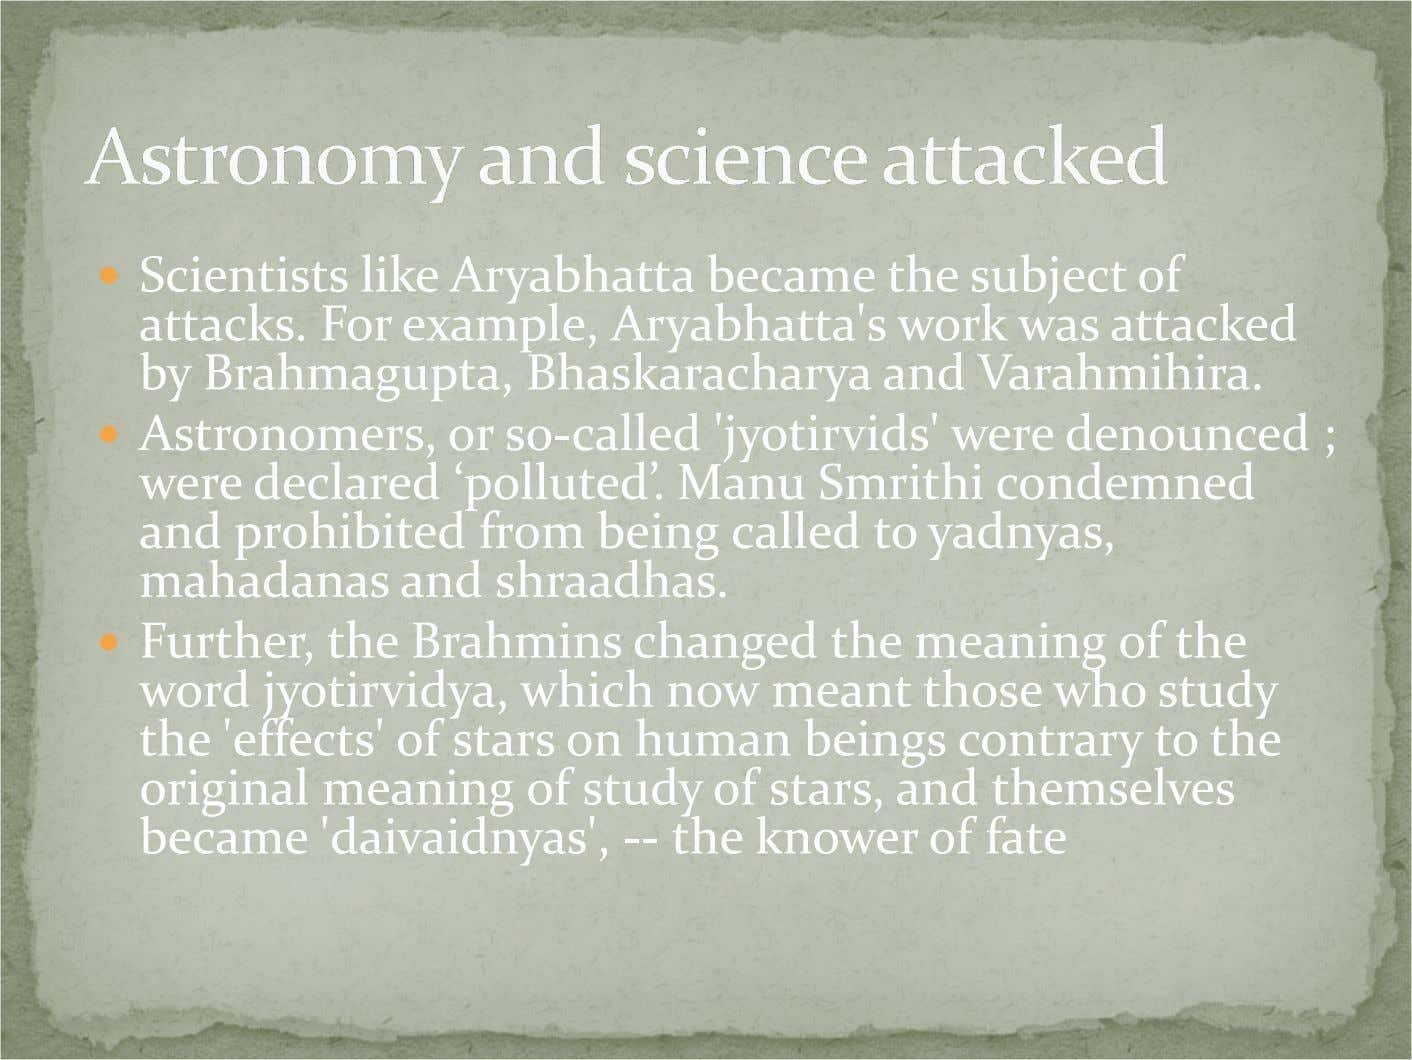 Scientists like Aryabhatta became the subject of attacks. For example, Aryabhatta's work was attacked by